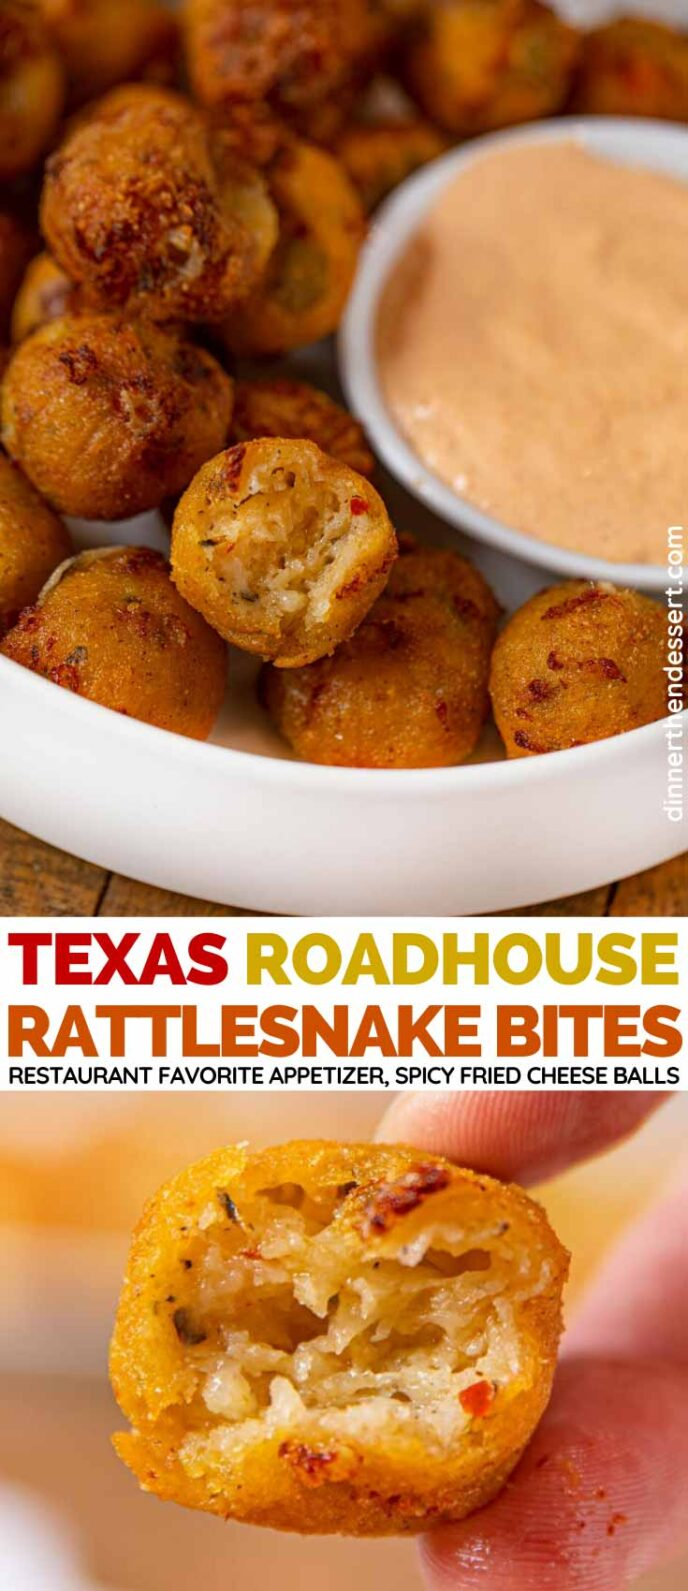 Texas Roadhouse Rattlesnake Bites (Copycat) collage